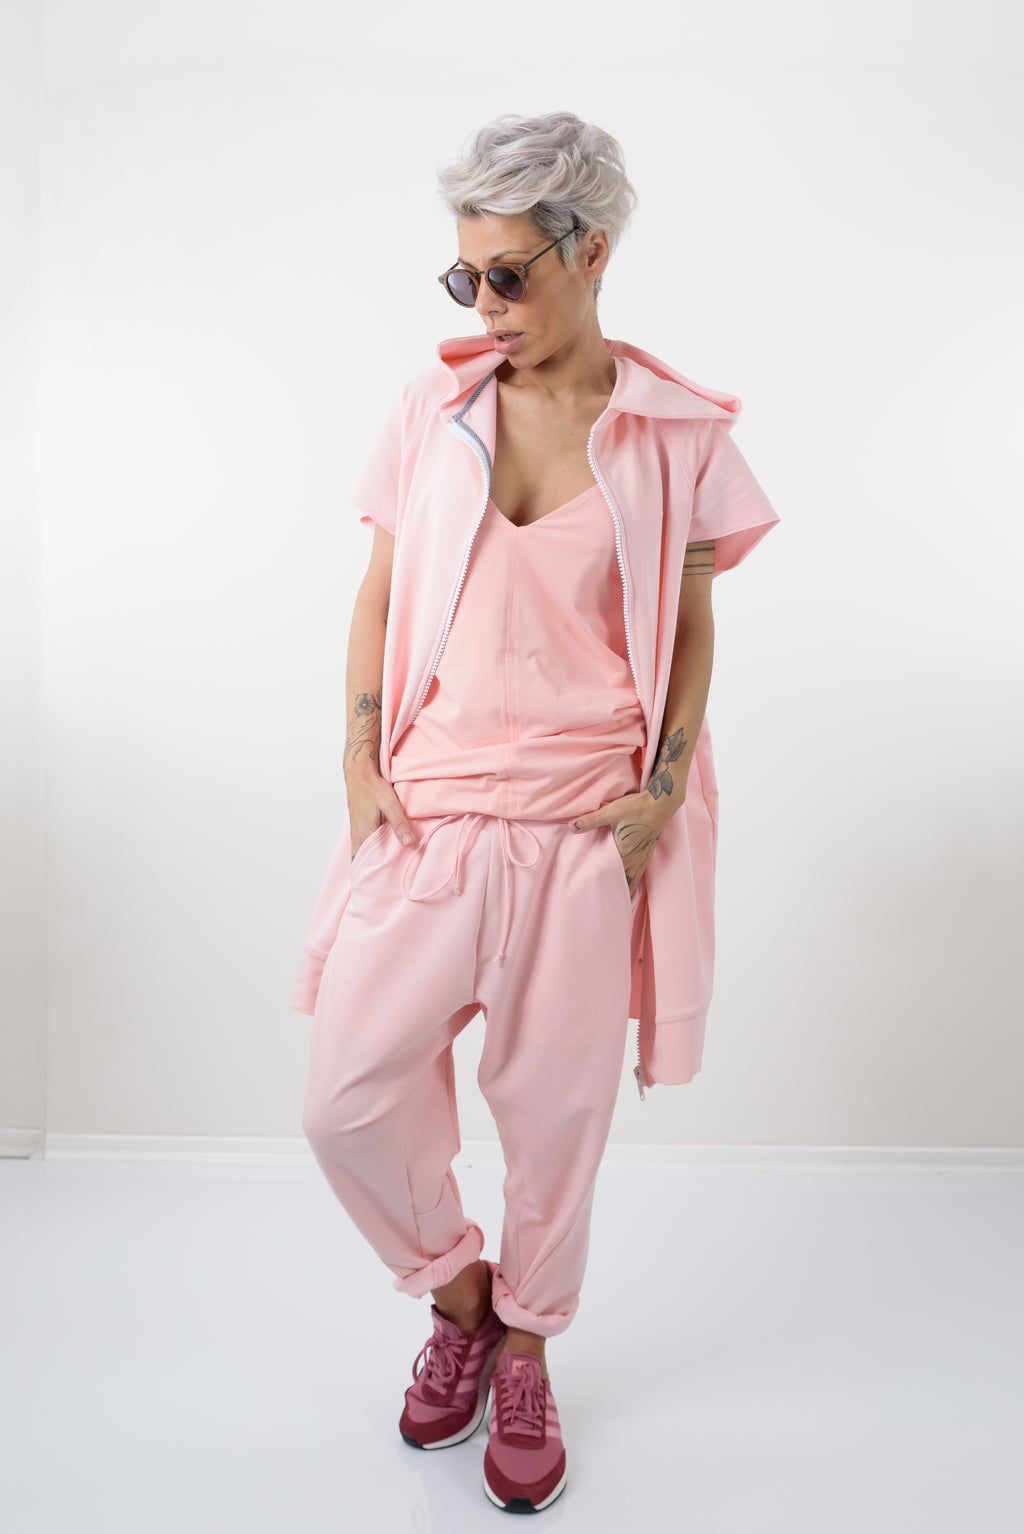 Pink Three Piece Set - Hoodie with short Sleeves, Tank top and Loose Pants - Clothes By Locker Room